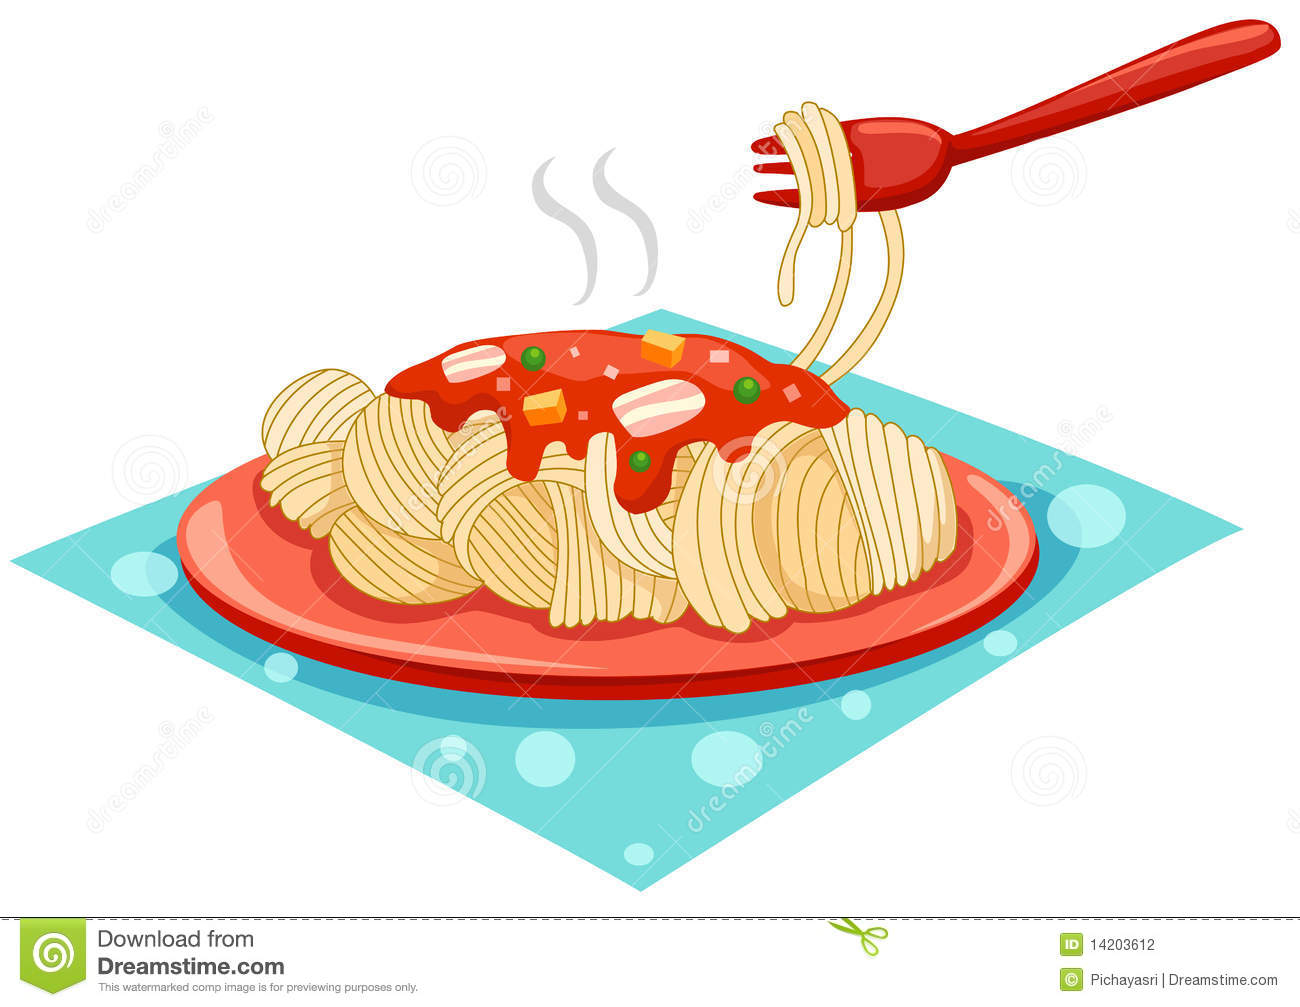 A Plate Of Spaghetti With Fork Stock Vector - Illustration of ...